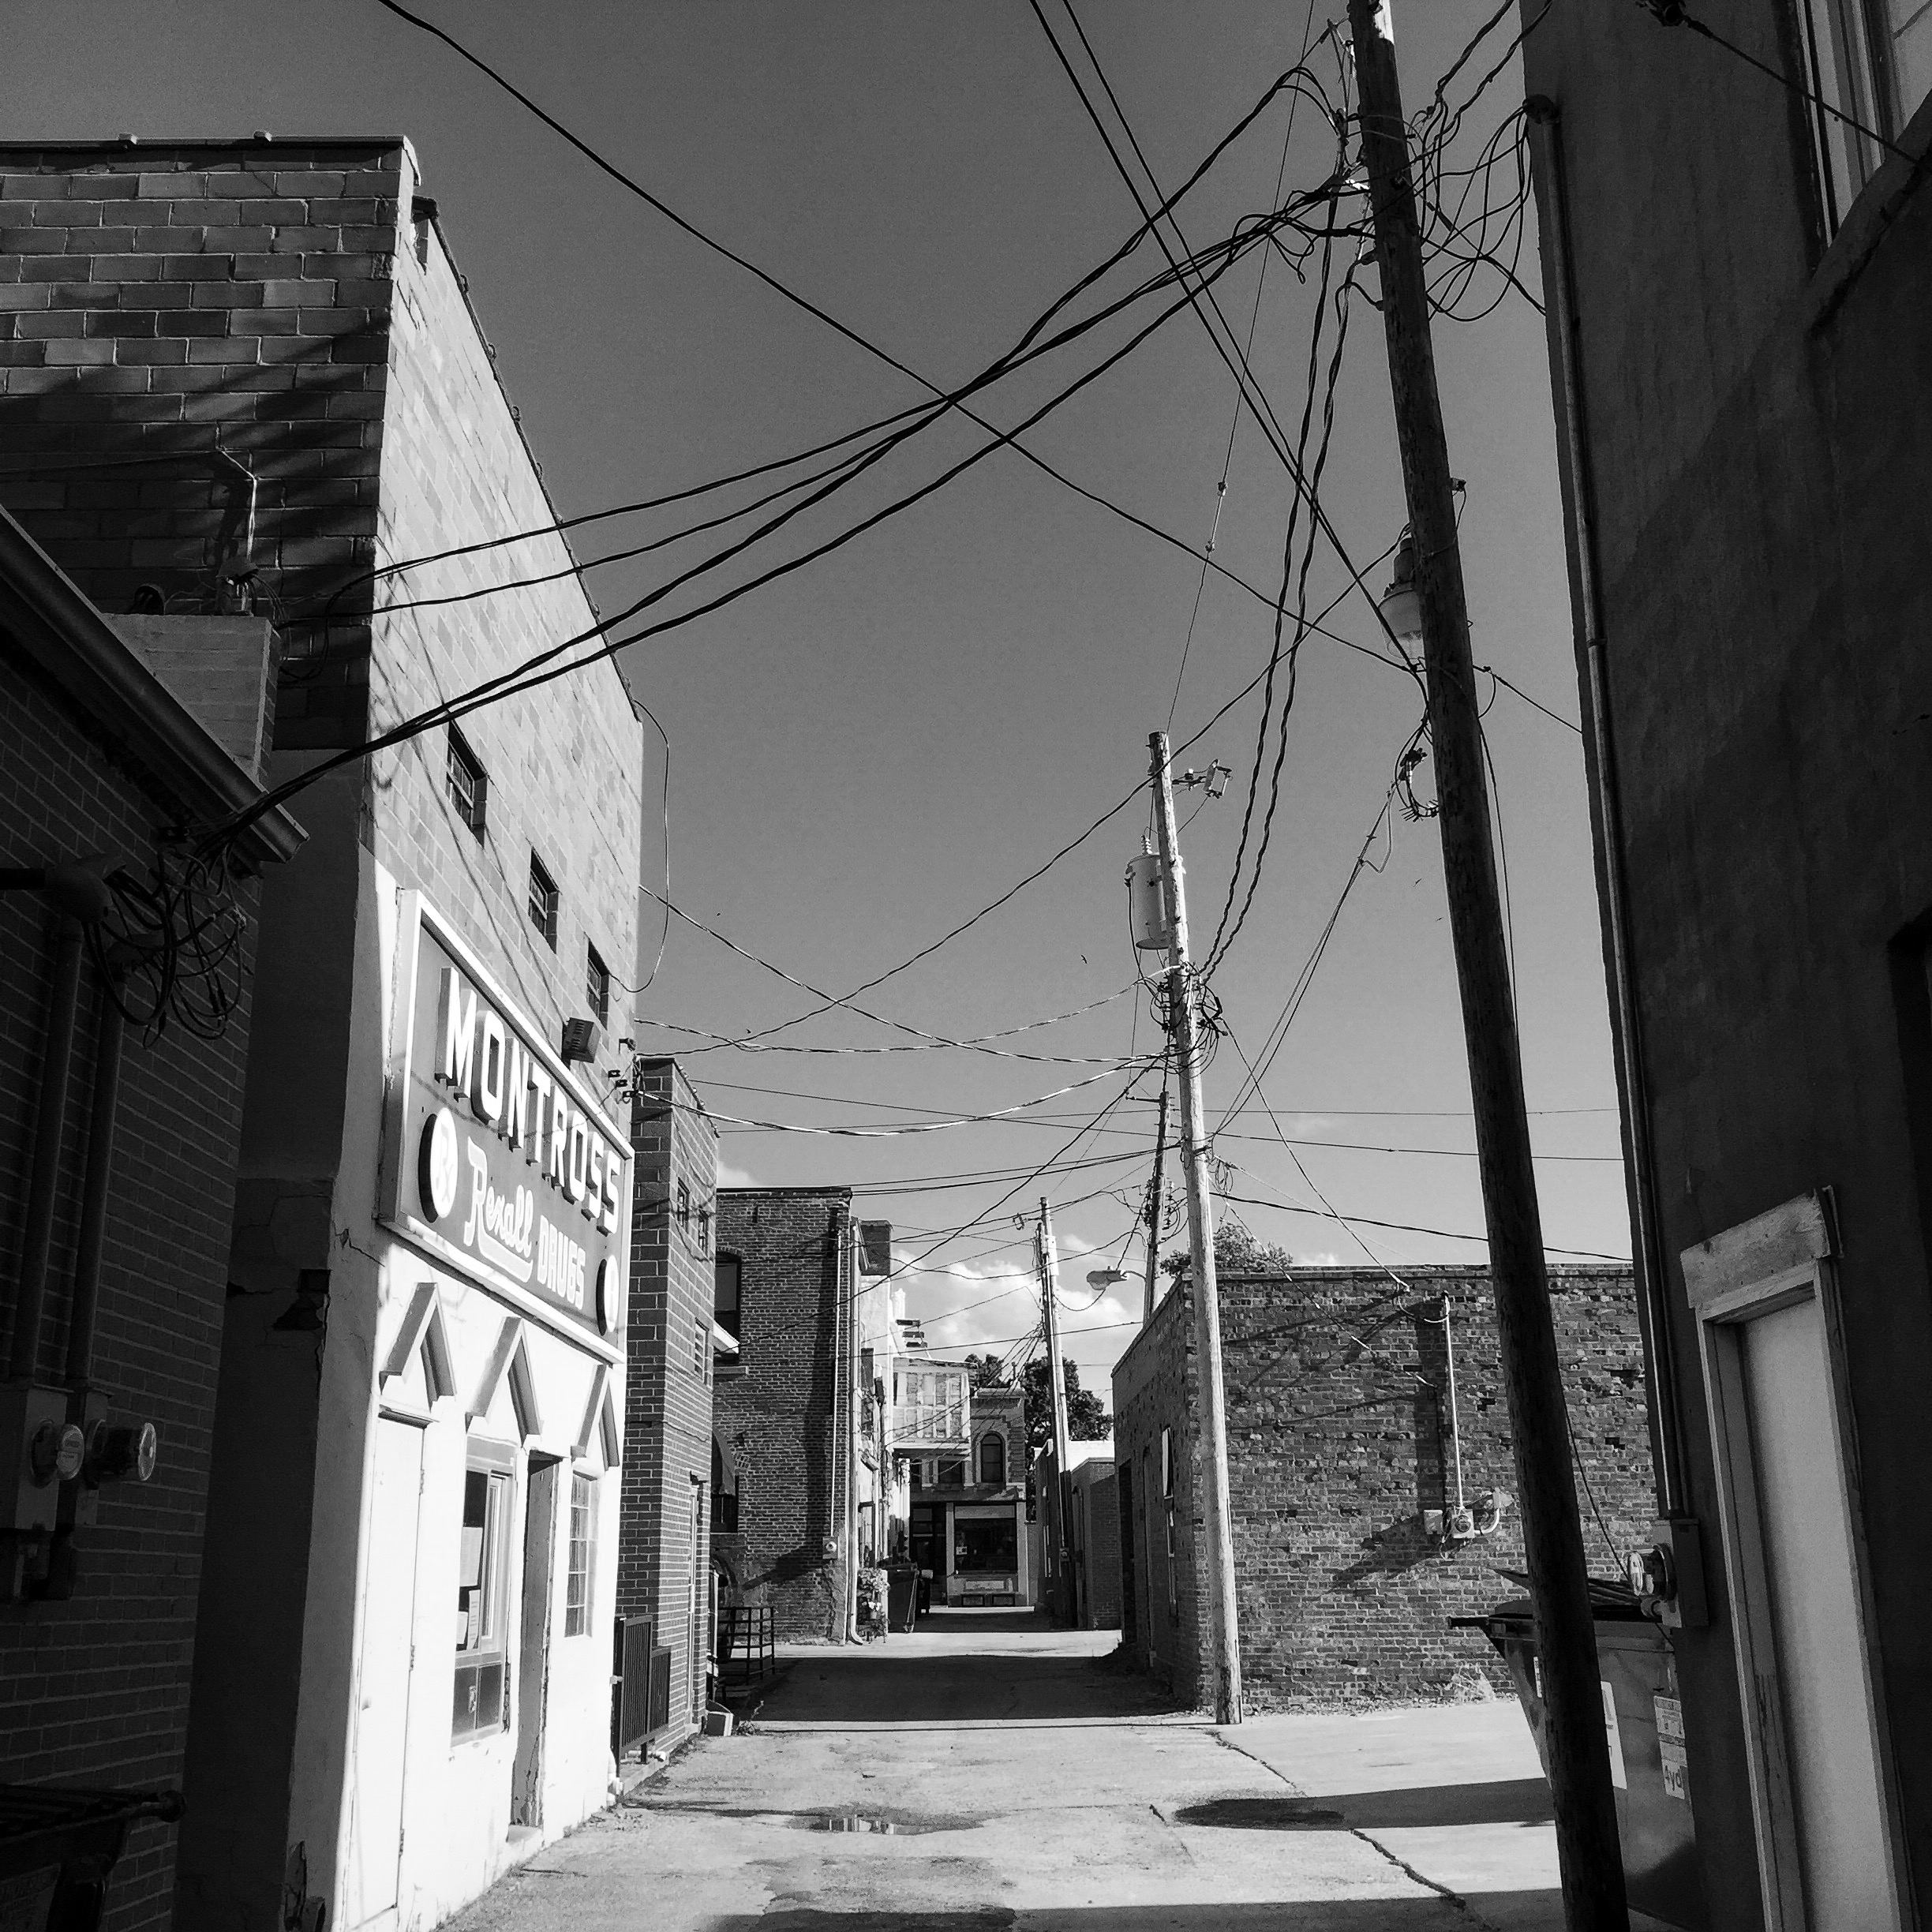 Alley. Winters, Iowa.